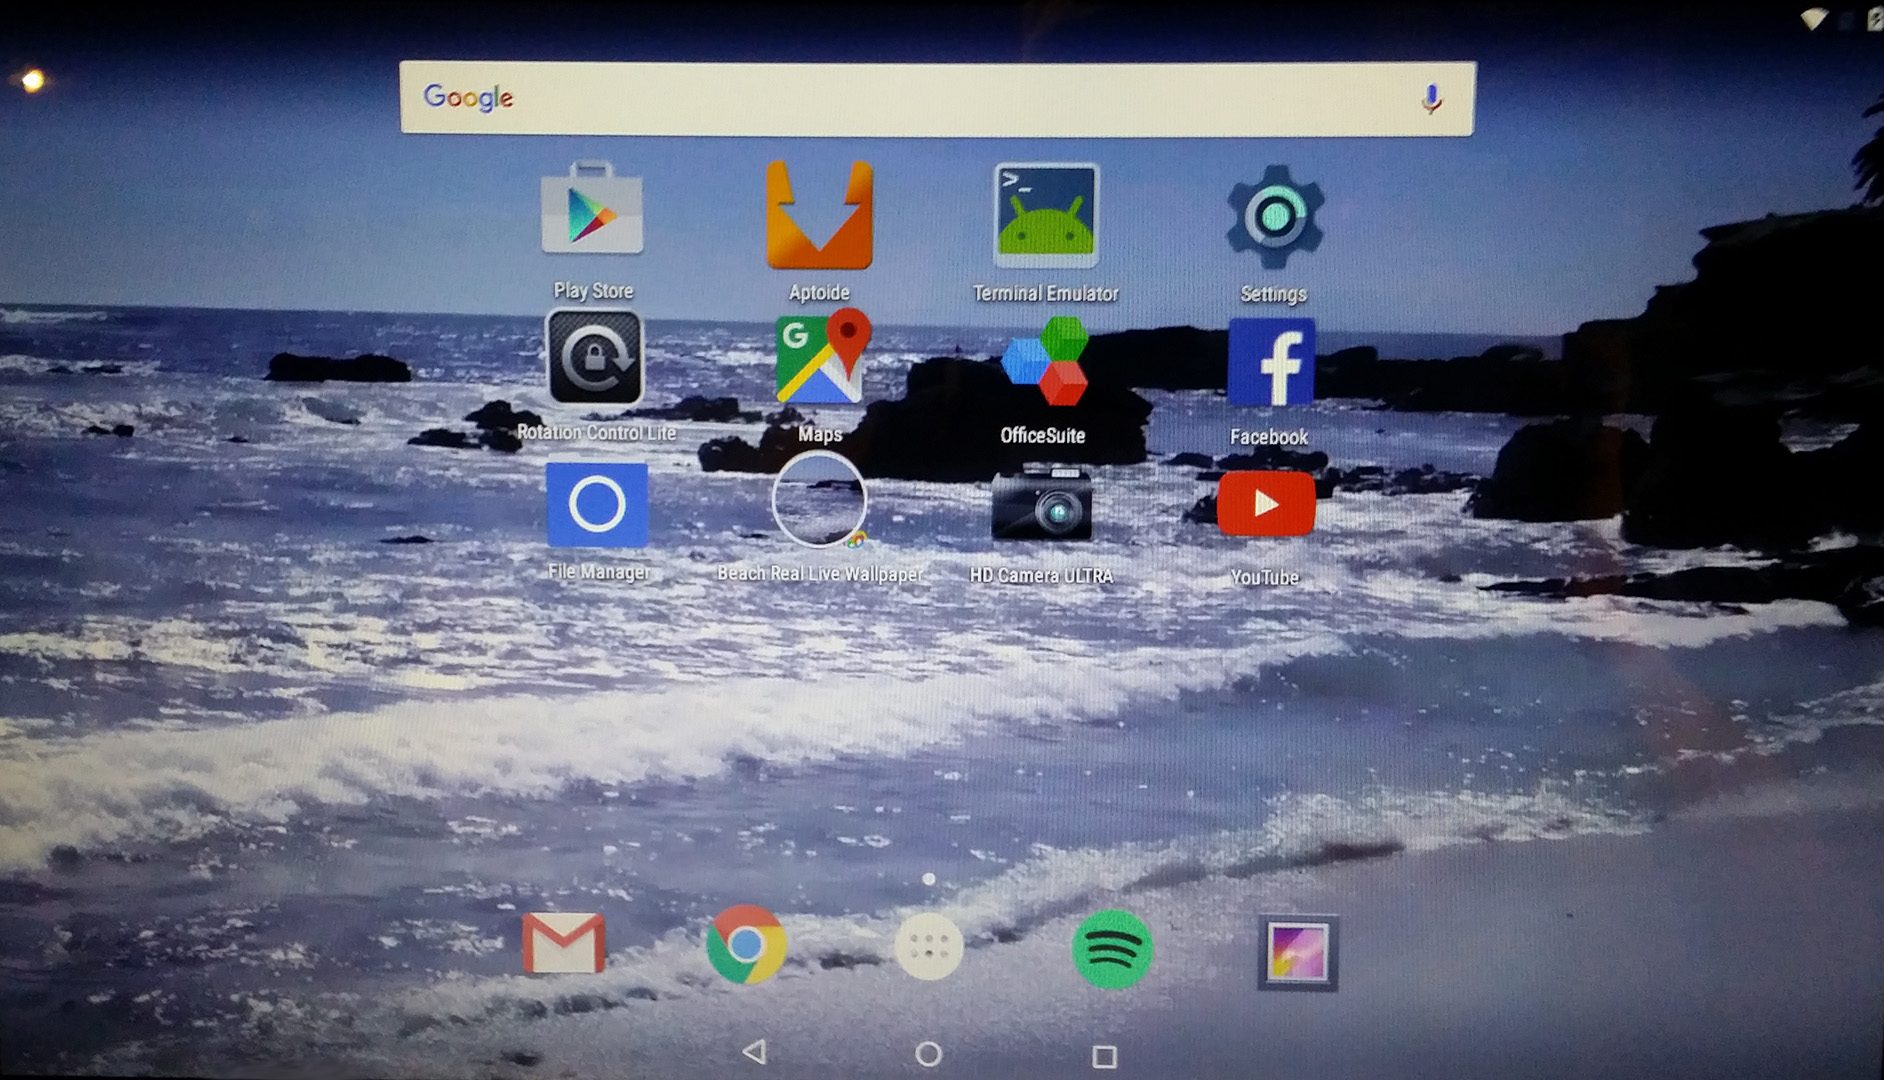 Android 6.0 Marshmallow aterra no seu PC usando Android-x86 6.0-rc1 1